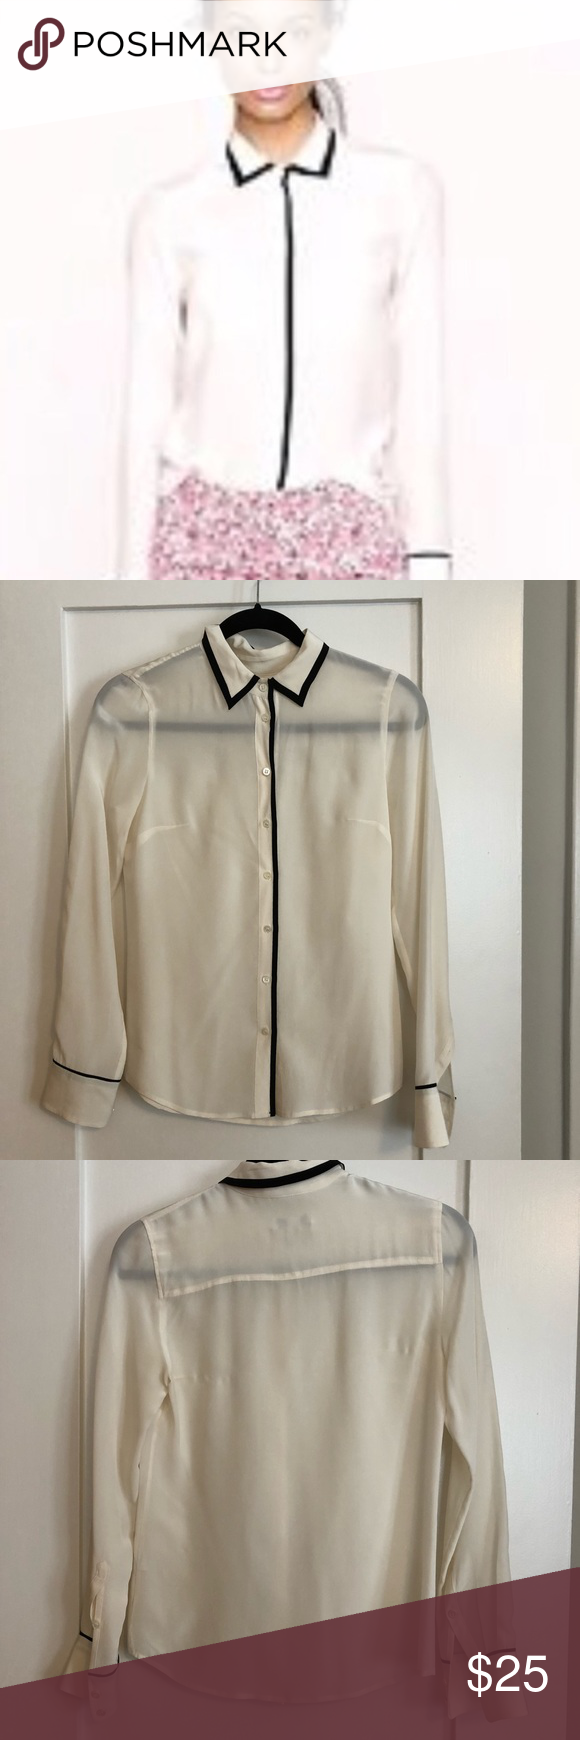 831d3a33c7c8c0 J.Crew White Silk Blouse with Black Trim Classic white silk blouse with  black trim